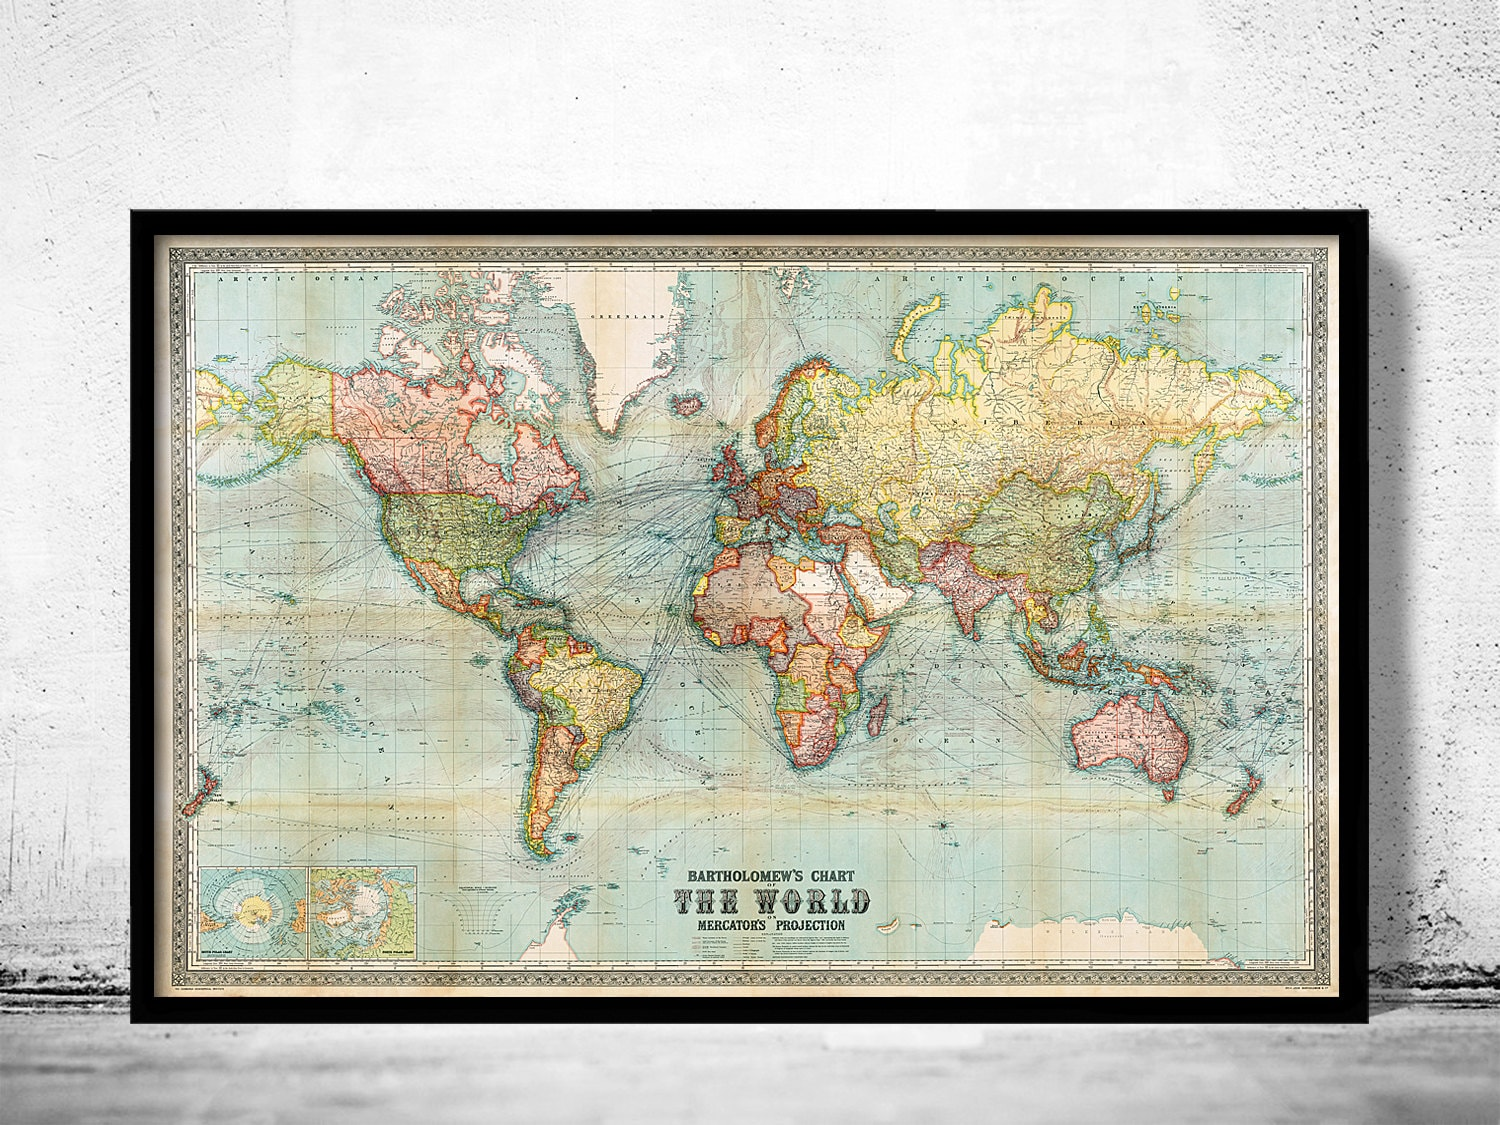 Beautiful World Map Vintage Atlas Mercator Projection - World map for sale